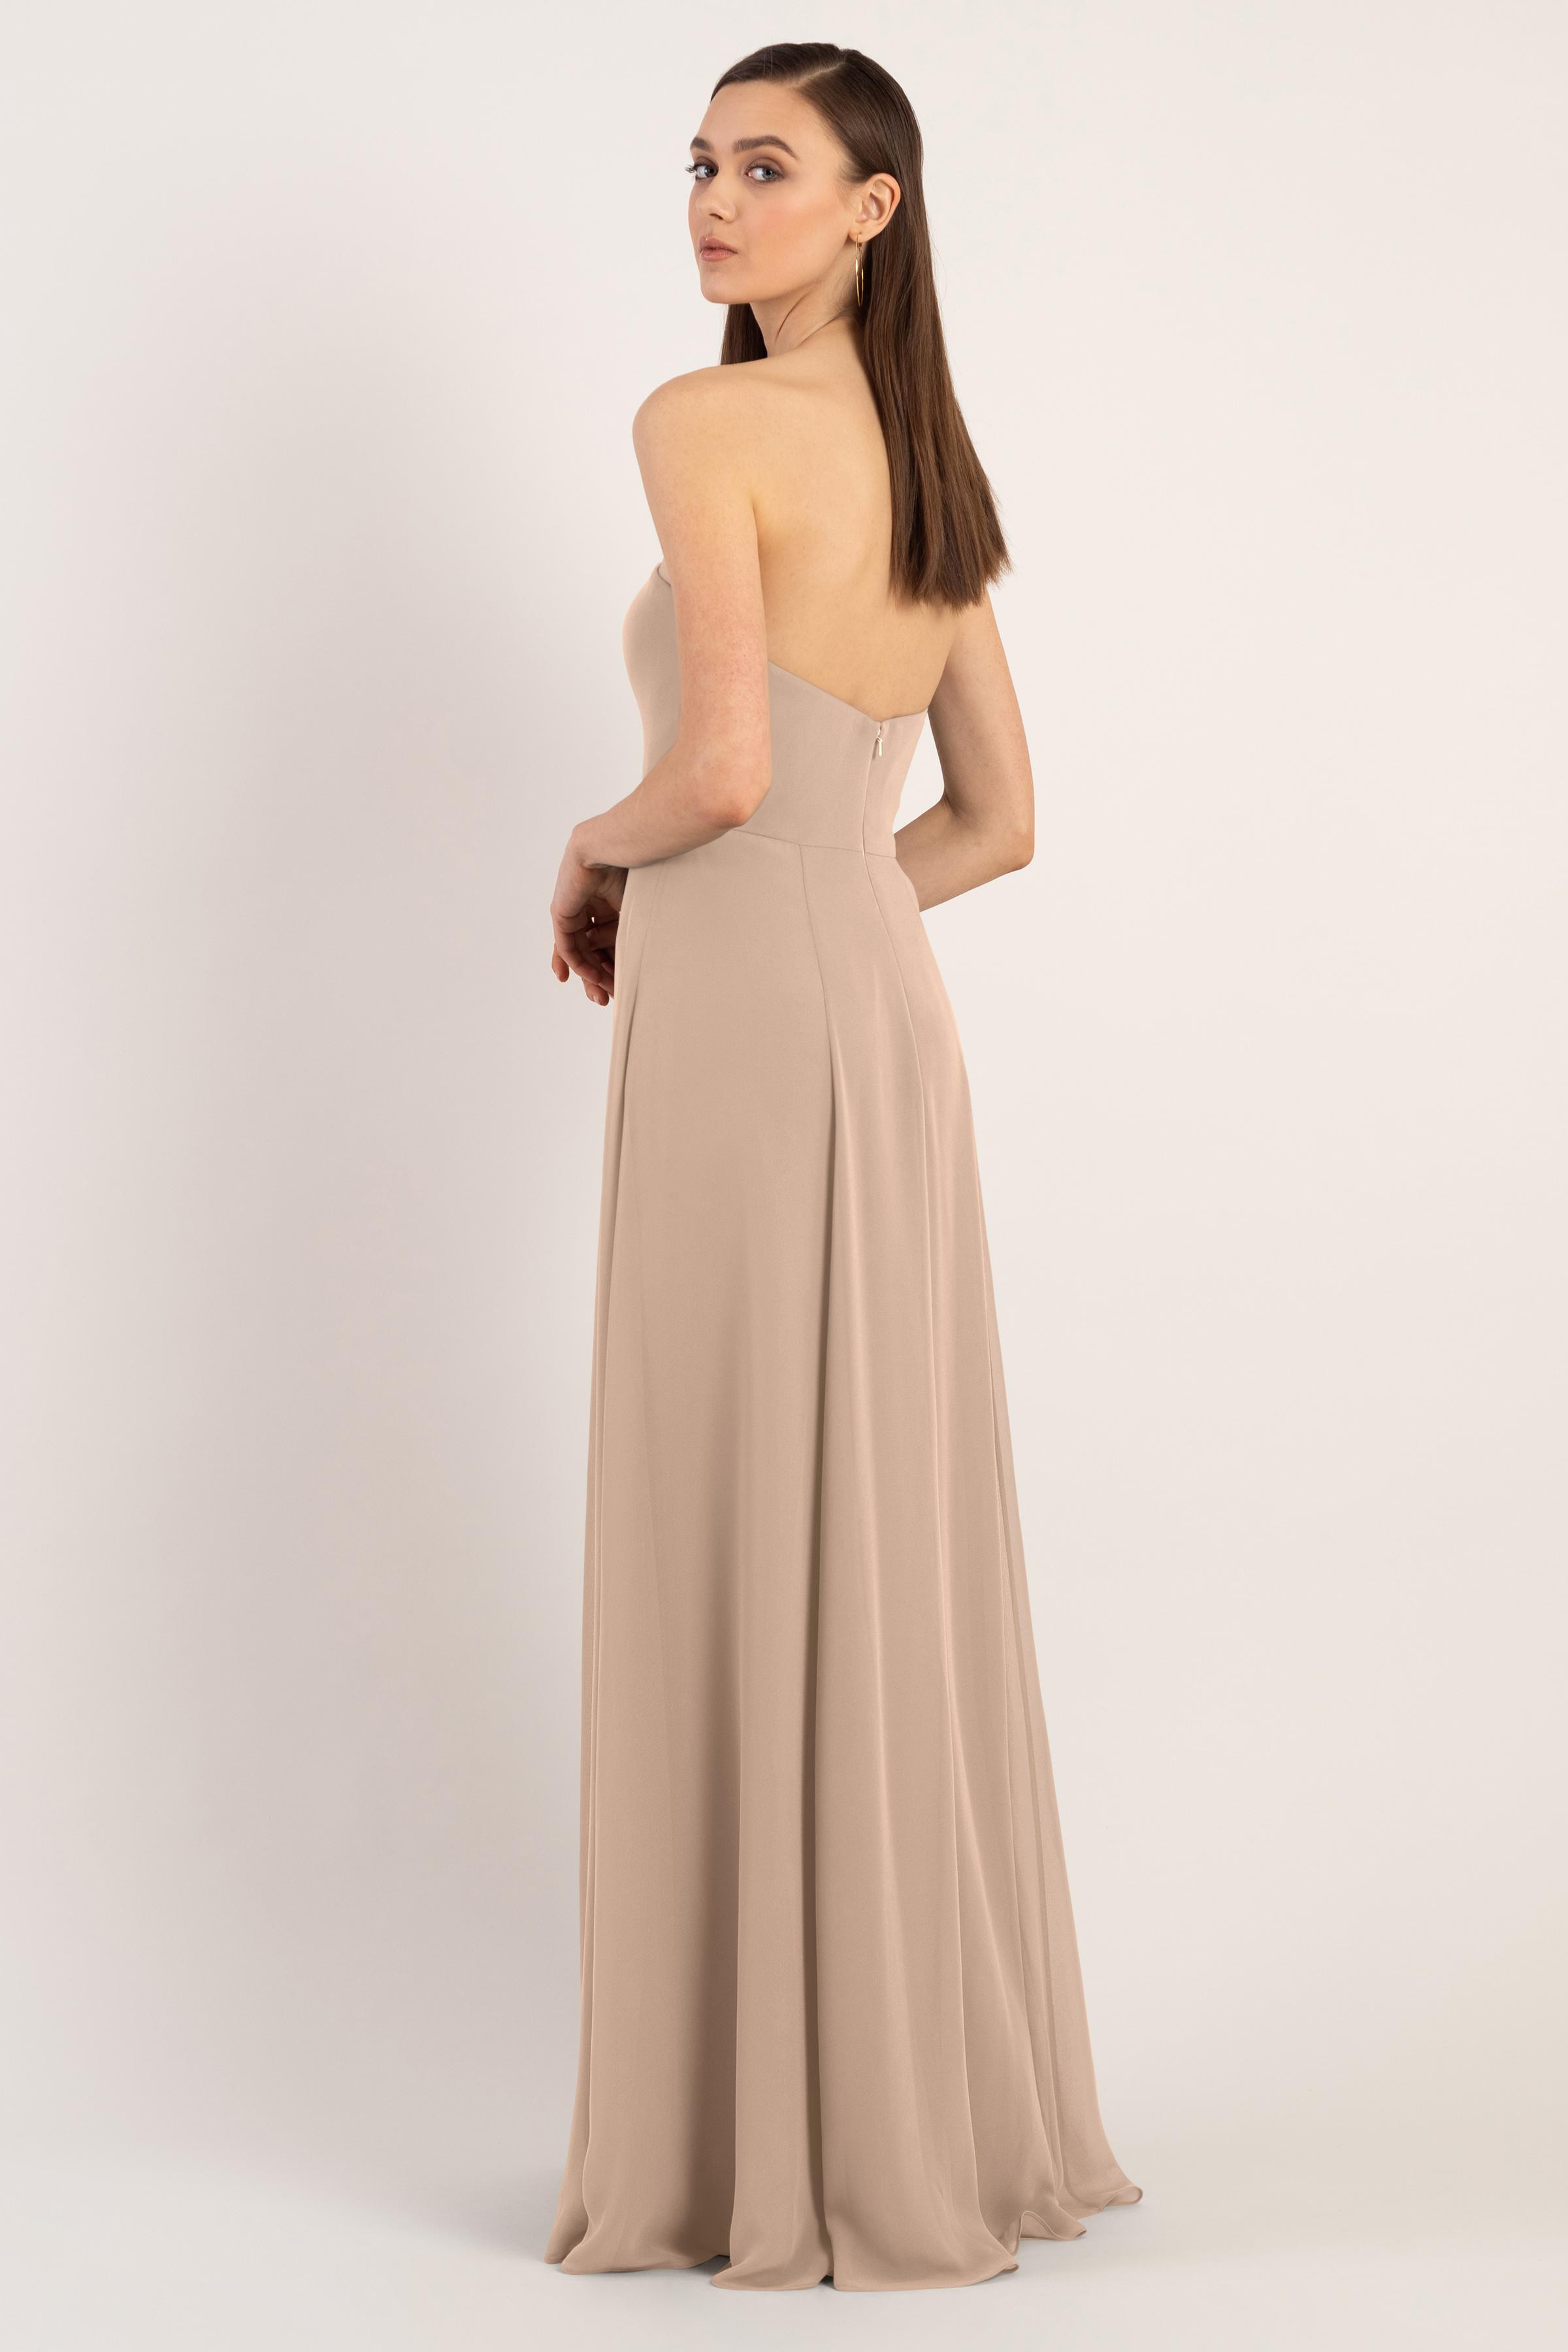 Essie Bridesmaids Dress by Jenny Yoo - Desert Rose